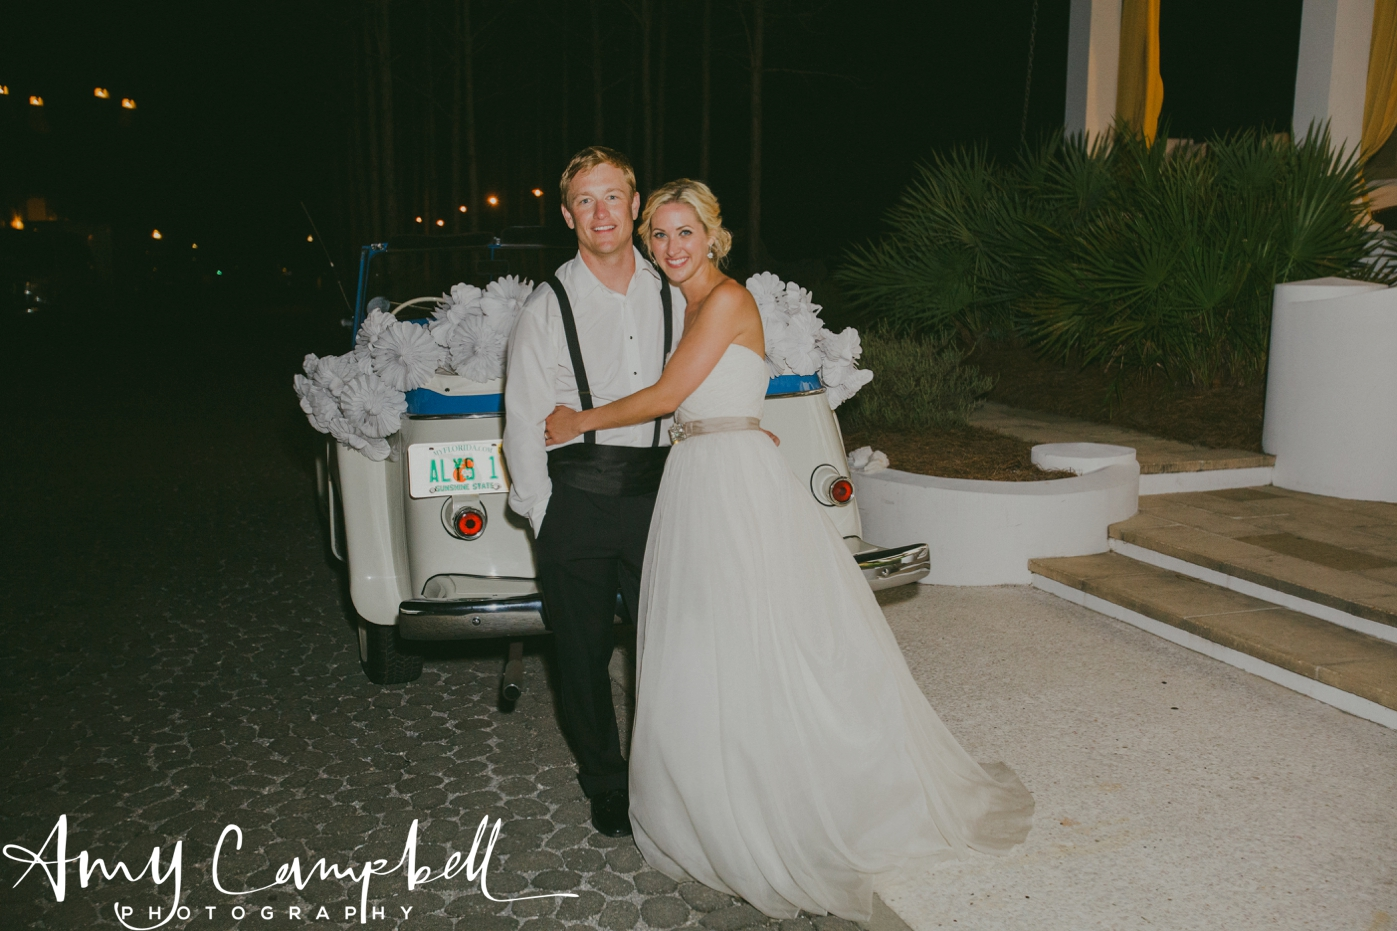 emilyreed_wed_blog_amycampbellphotography_0115.jpg